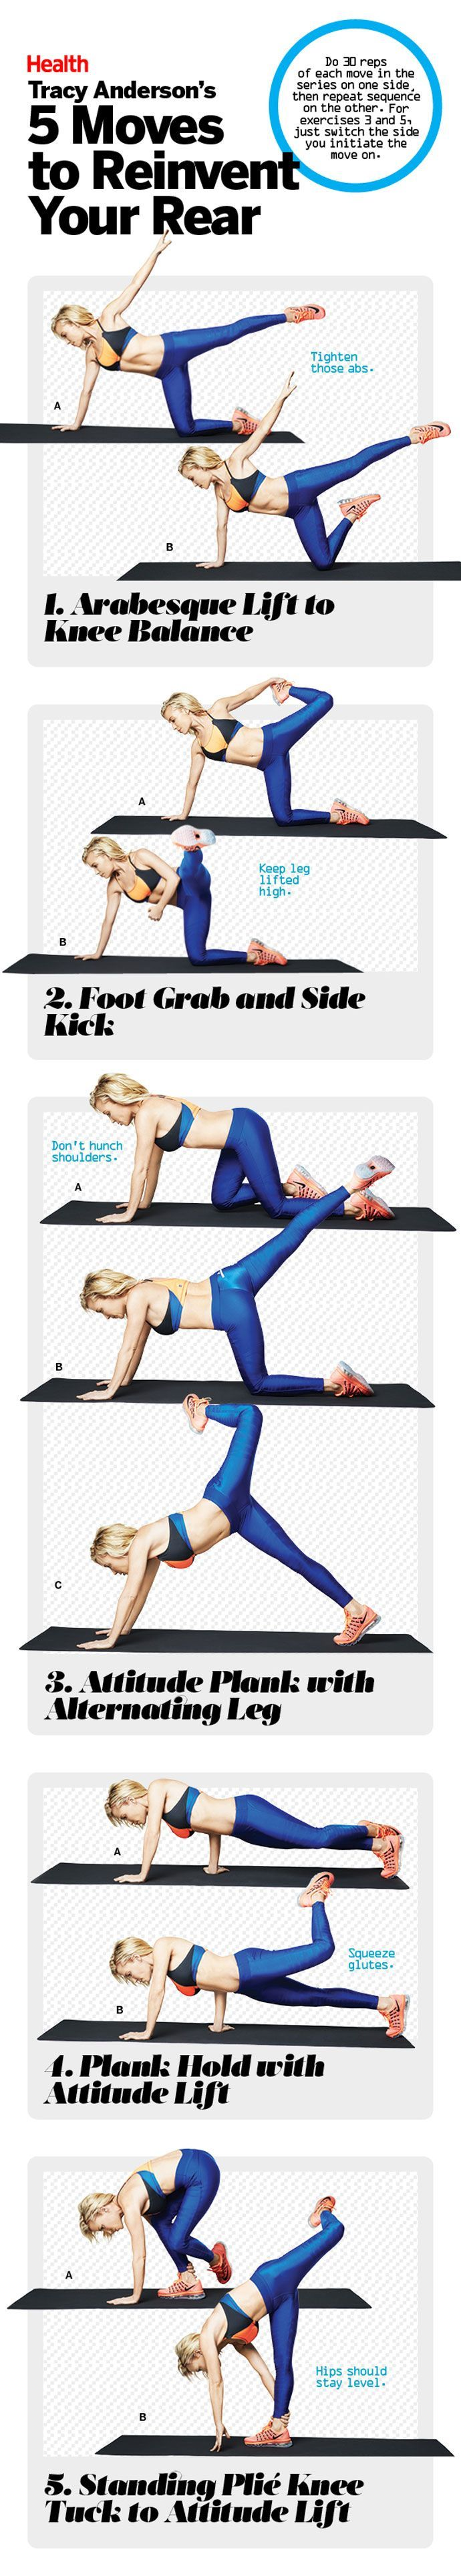 Tracy Anderson shares 5 butt exercises that will reinvent your rear. | Health.com